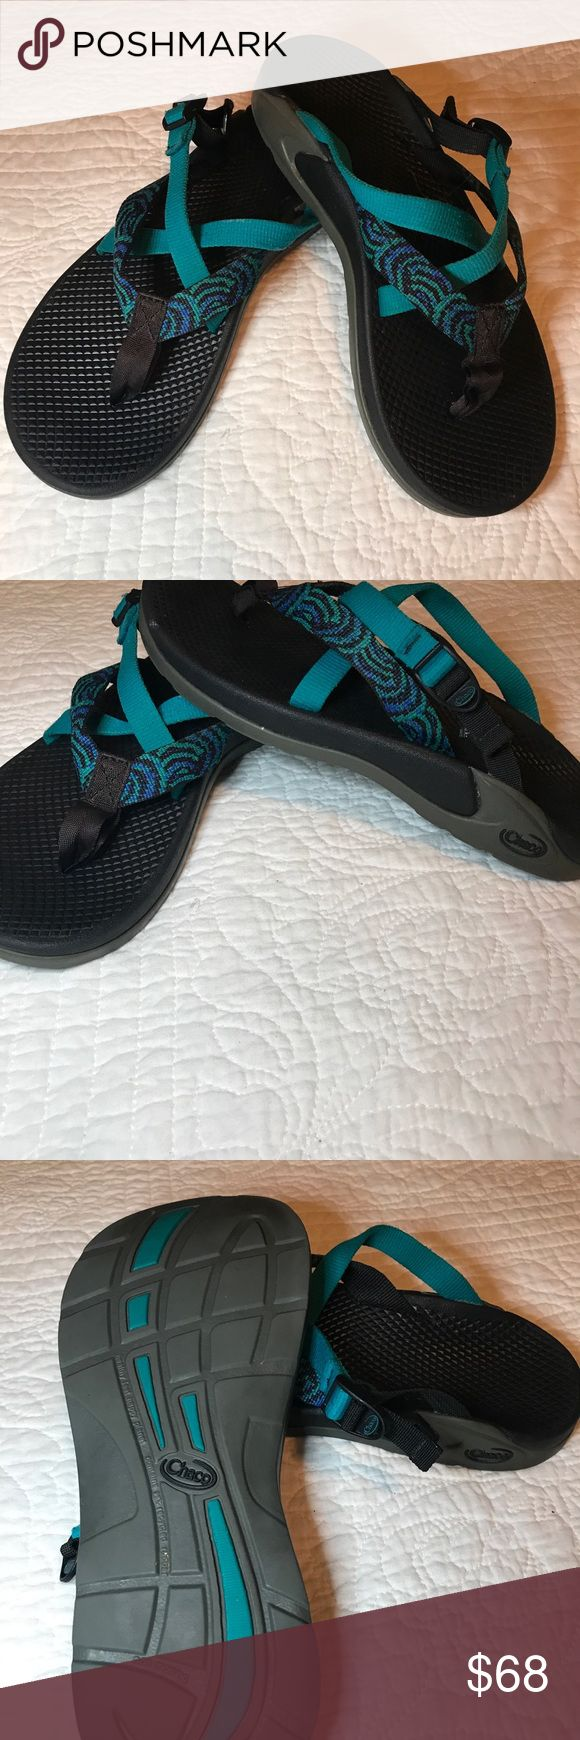 Black and teal Chaco flip flop Black and teal double strap women's Chaco flip flop. Size 9. Chaco Shoes Sandals